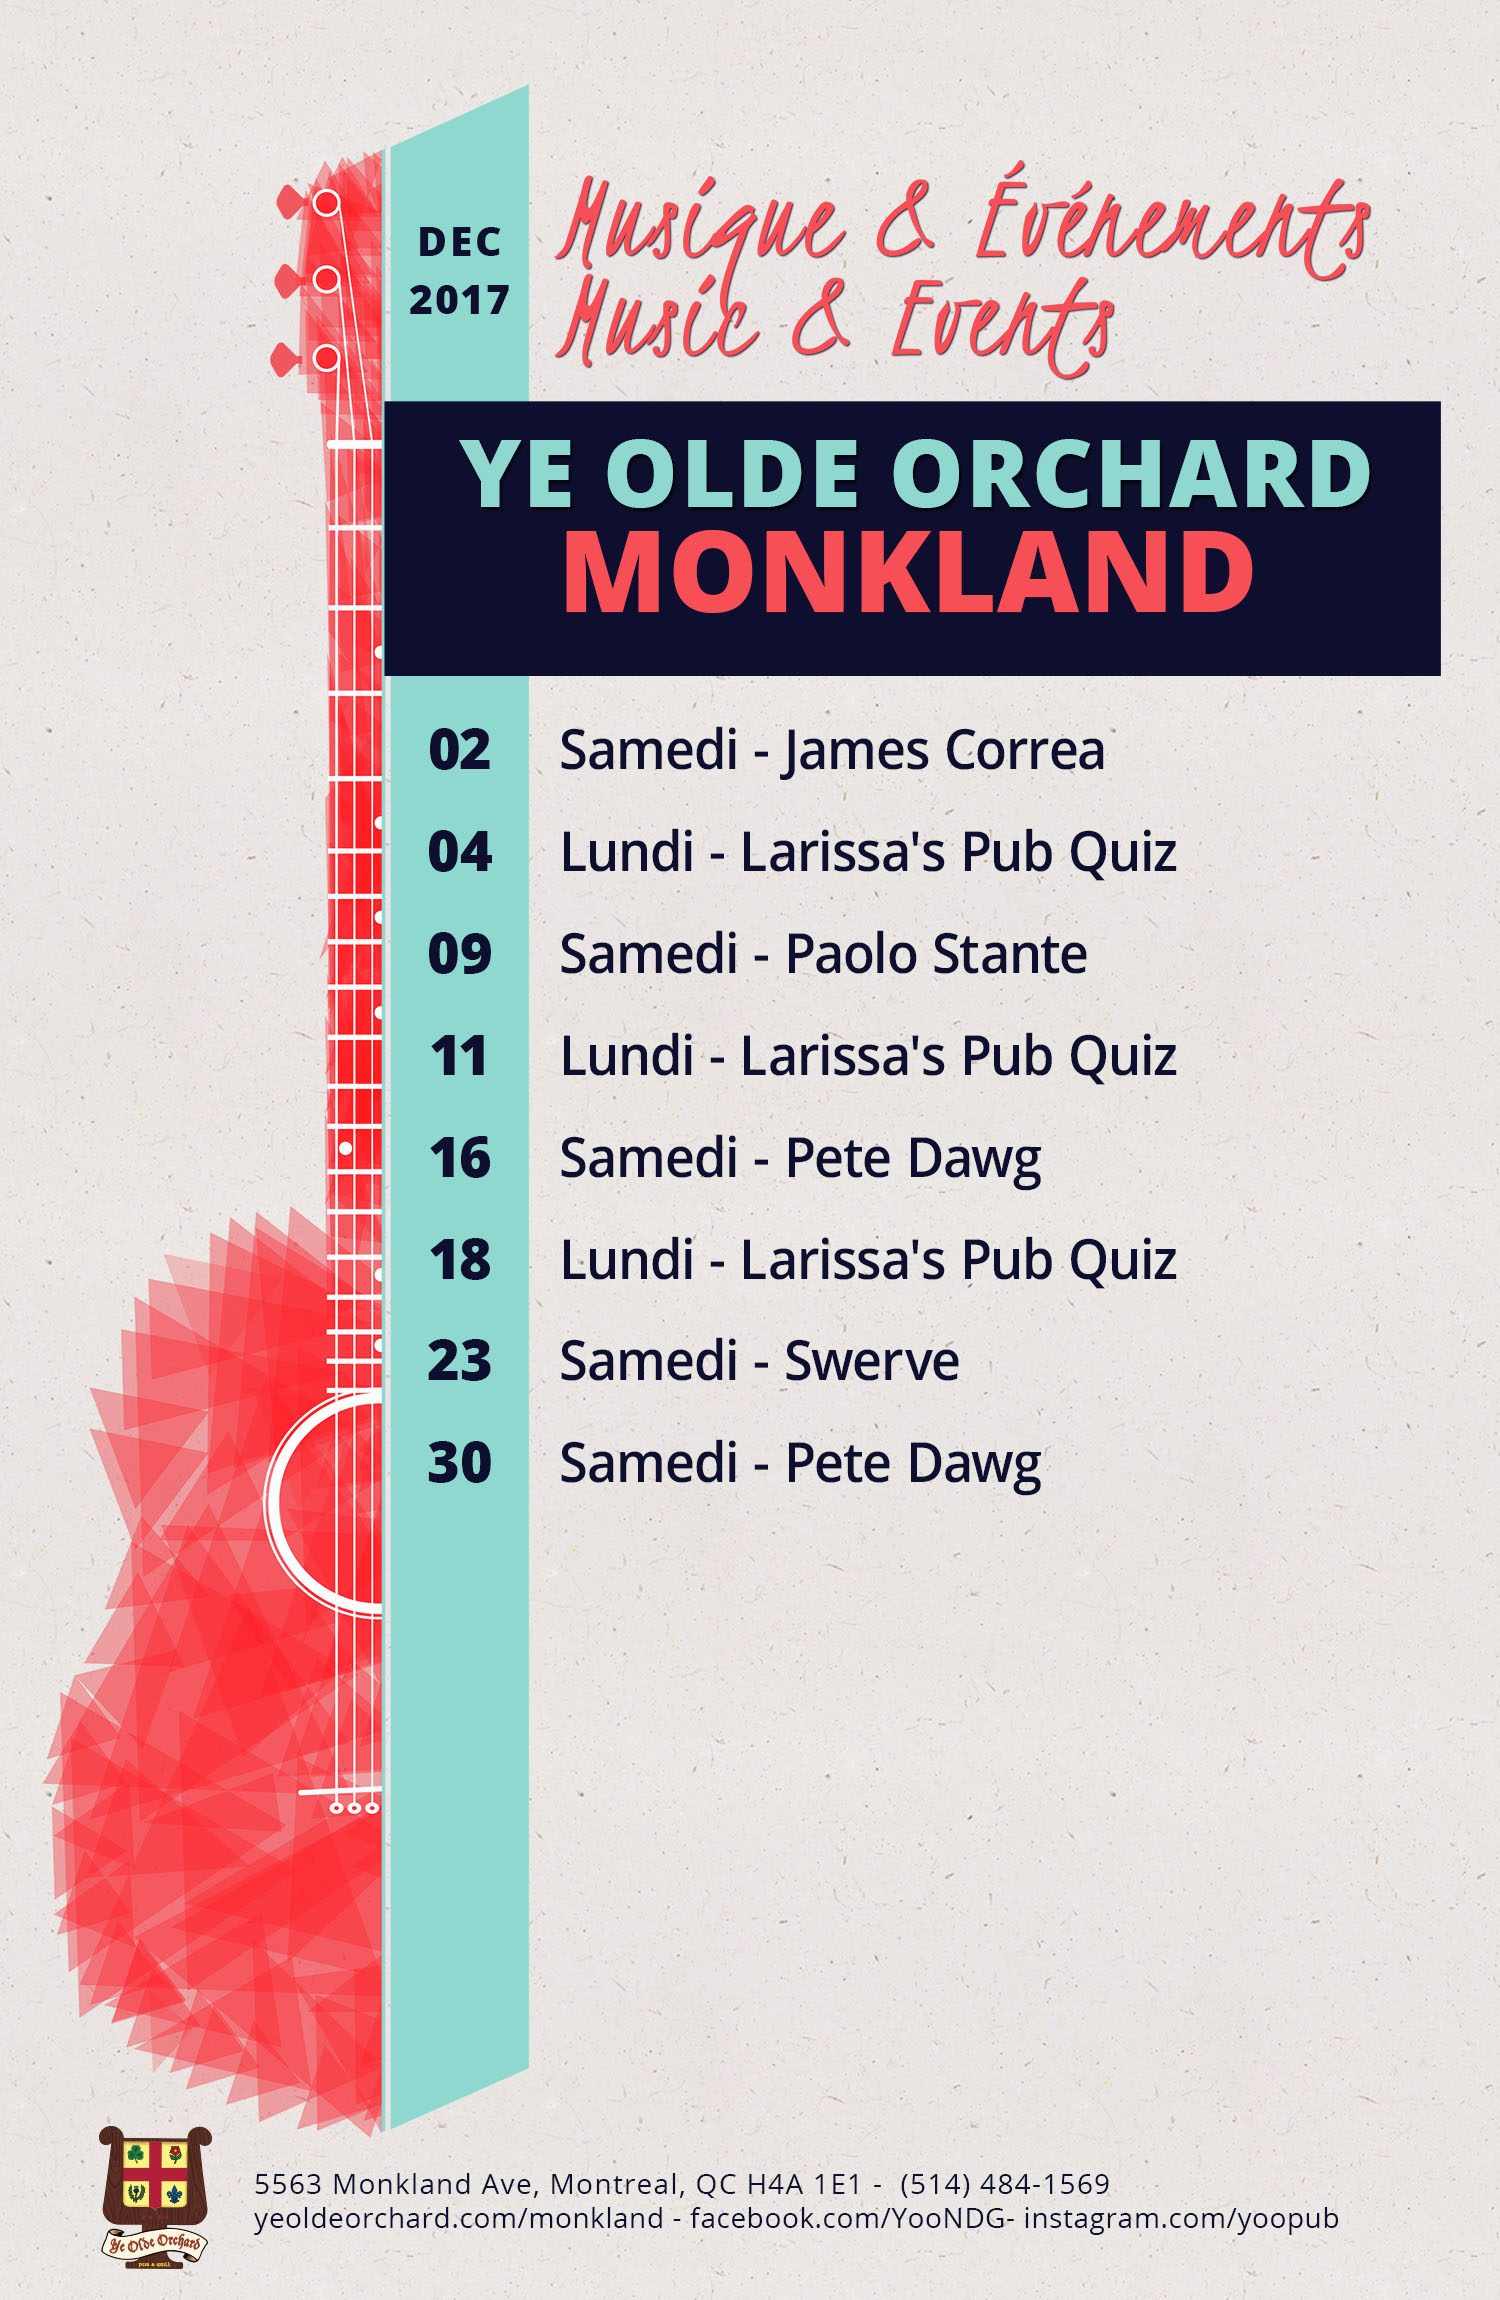 ye-olde-orchard-pub-music-and-events-calendar-Monkland-DEC-WEB